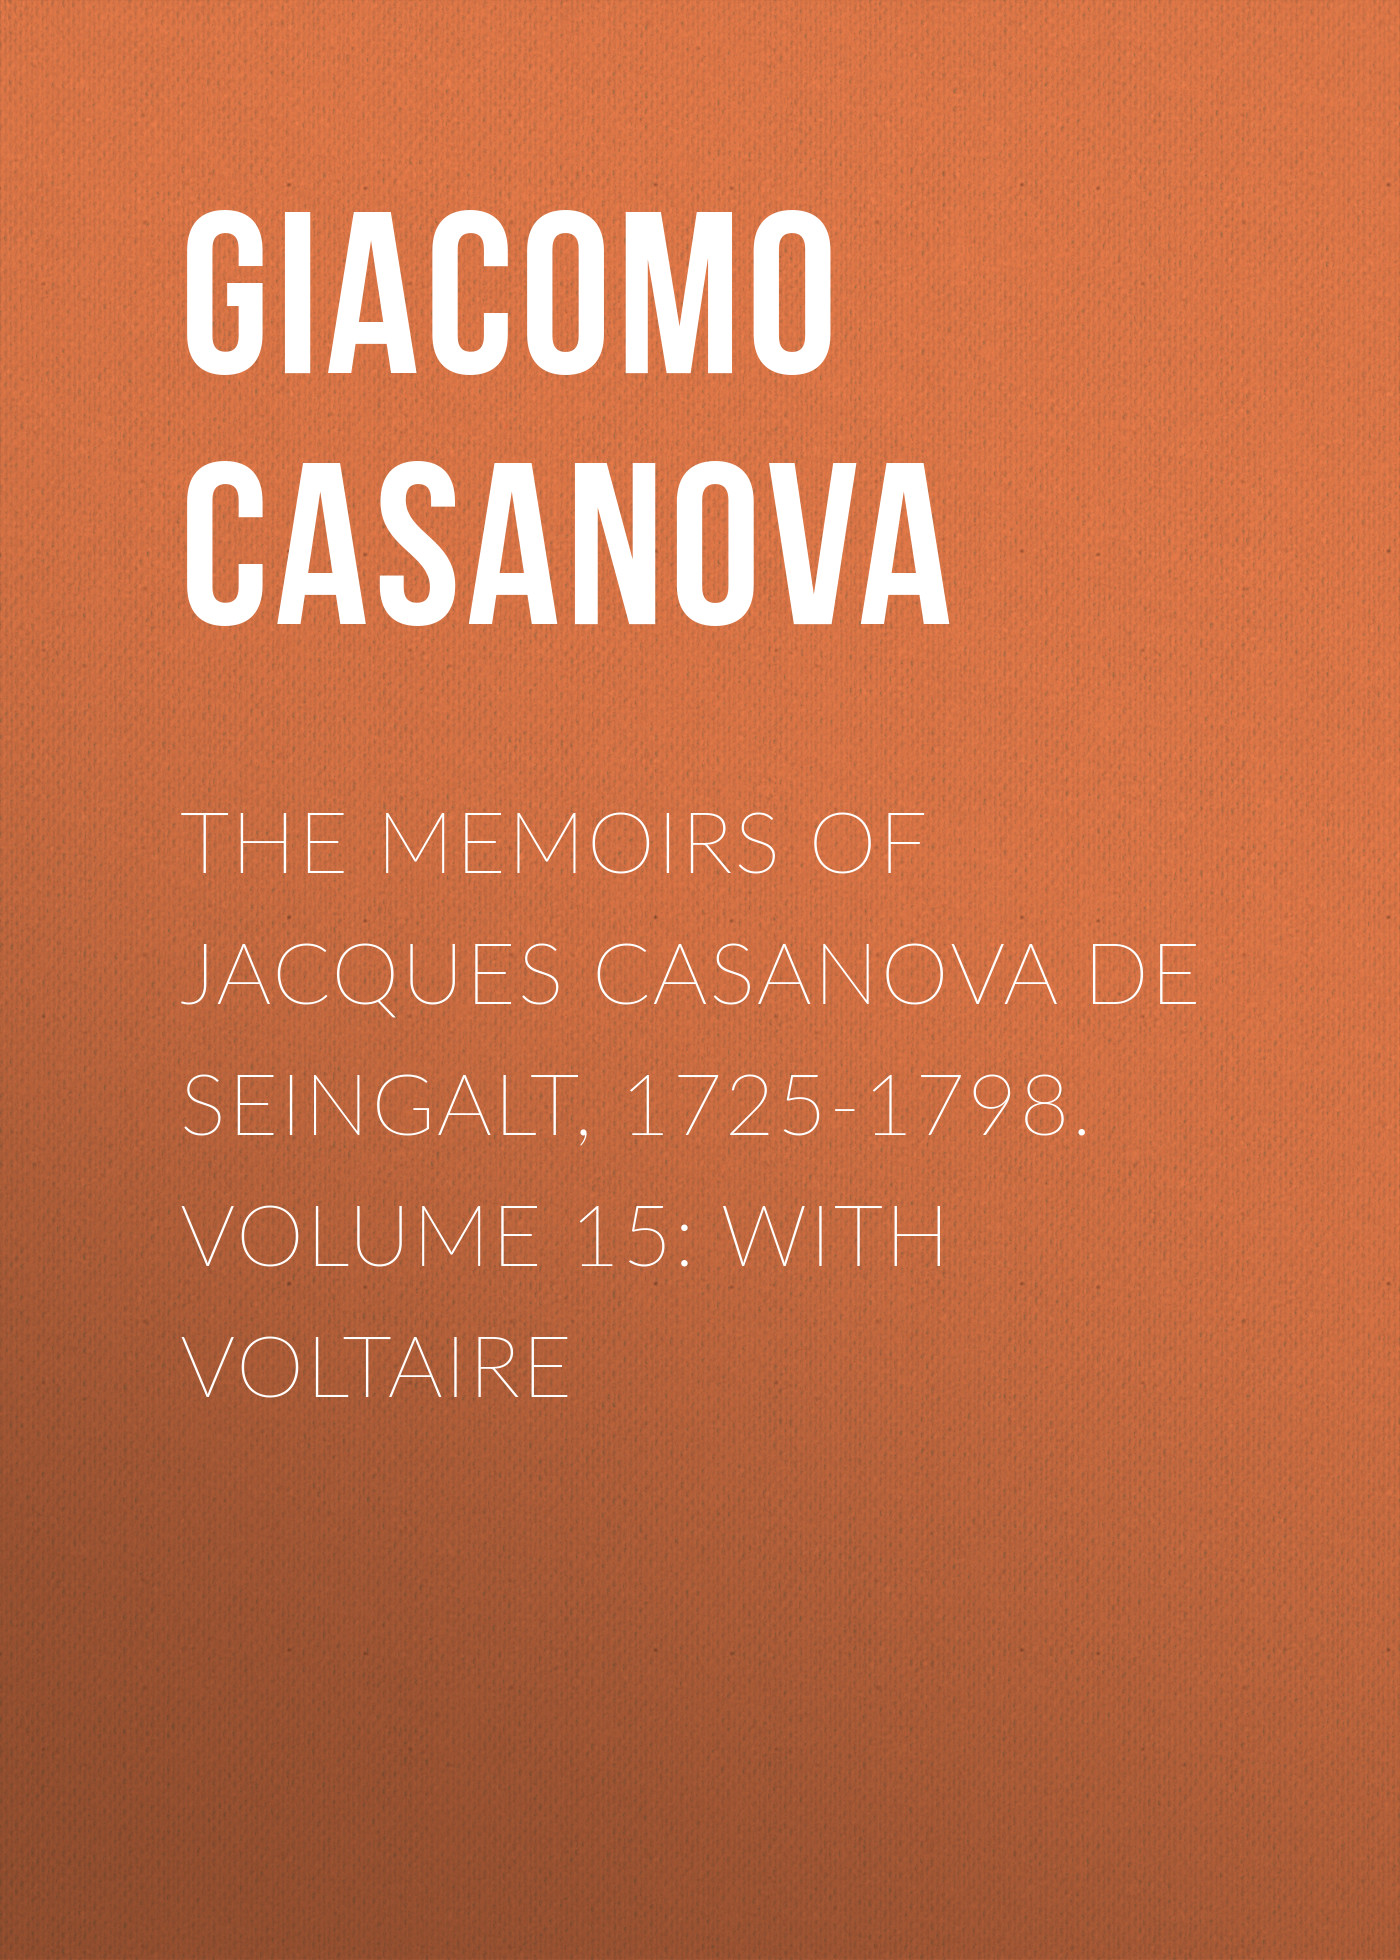 Giacomo Casanova The Memoirs of Jacques Casanova de Seingalt, 1725-1798. Volume 15: With Voltaire giacomo casanova the memoirs of jacques casanova de seingalt 1725 1798 volume 30 old age and death